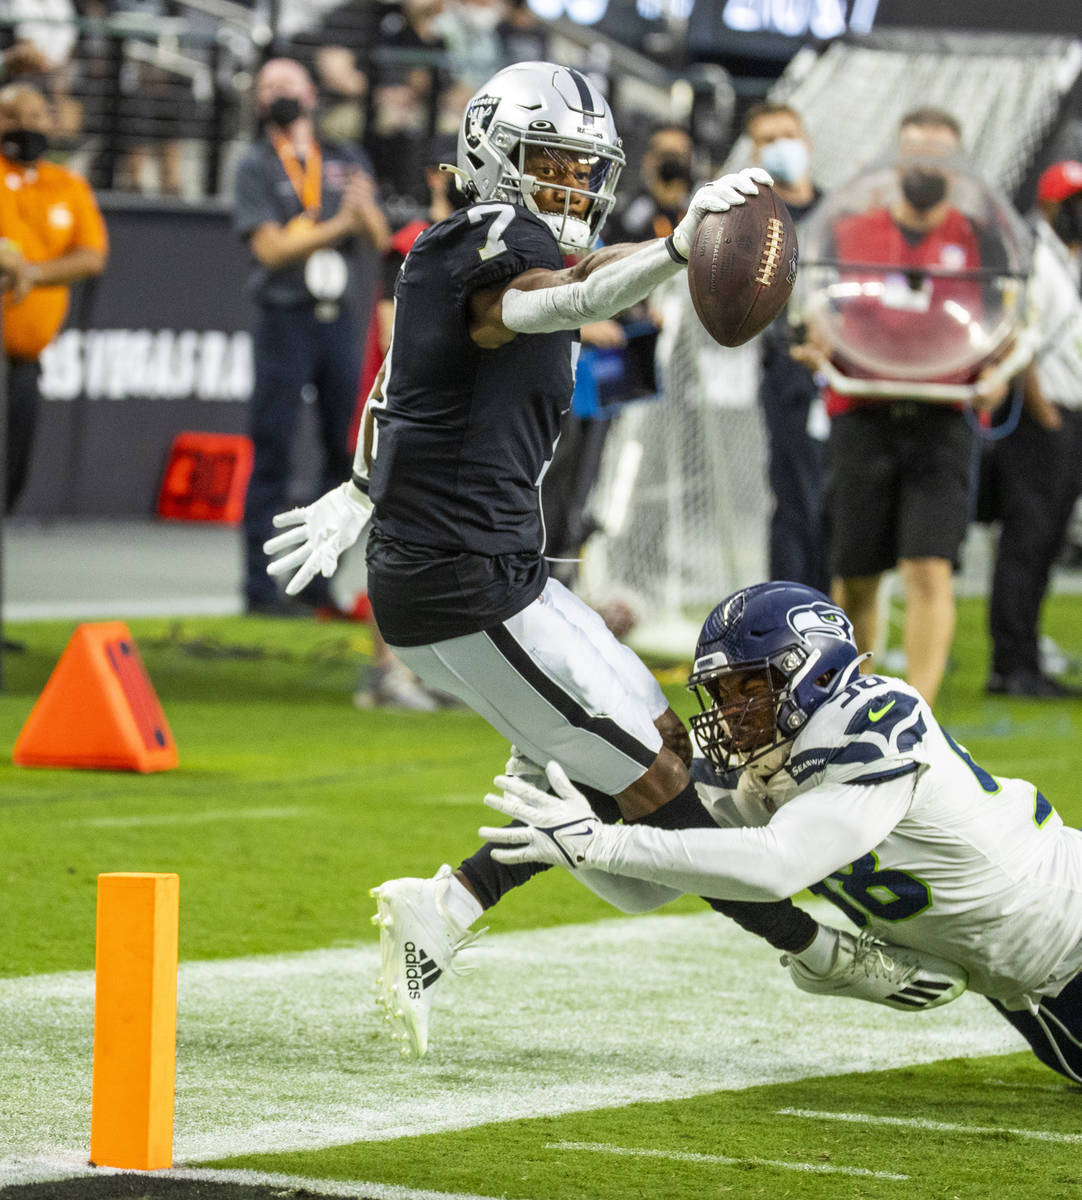 Raiders wide receiver Zay Jones (7) extends to the goal line after a catch near the end zone as ...